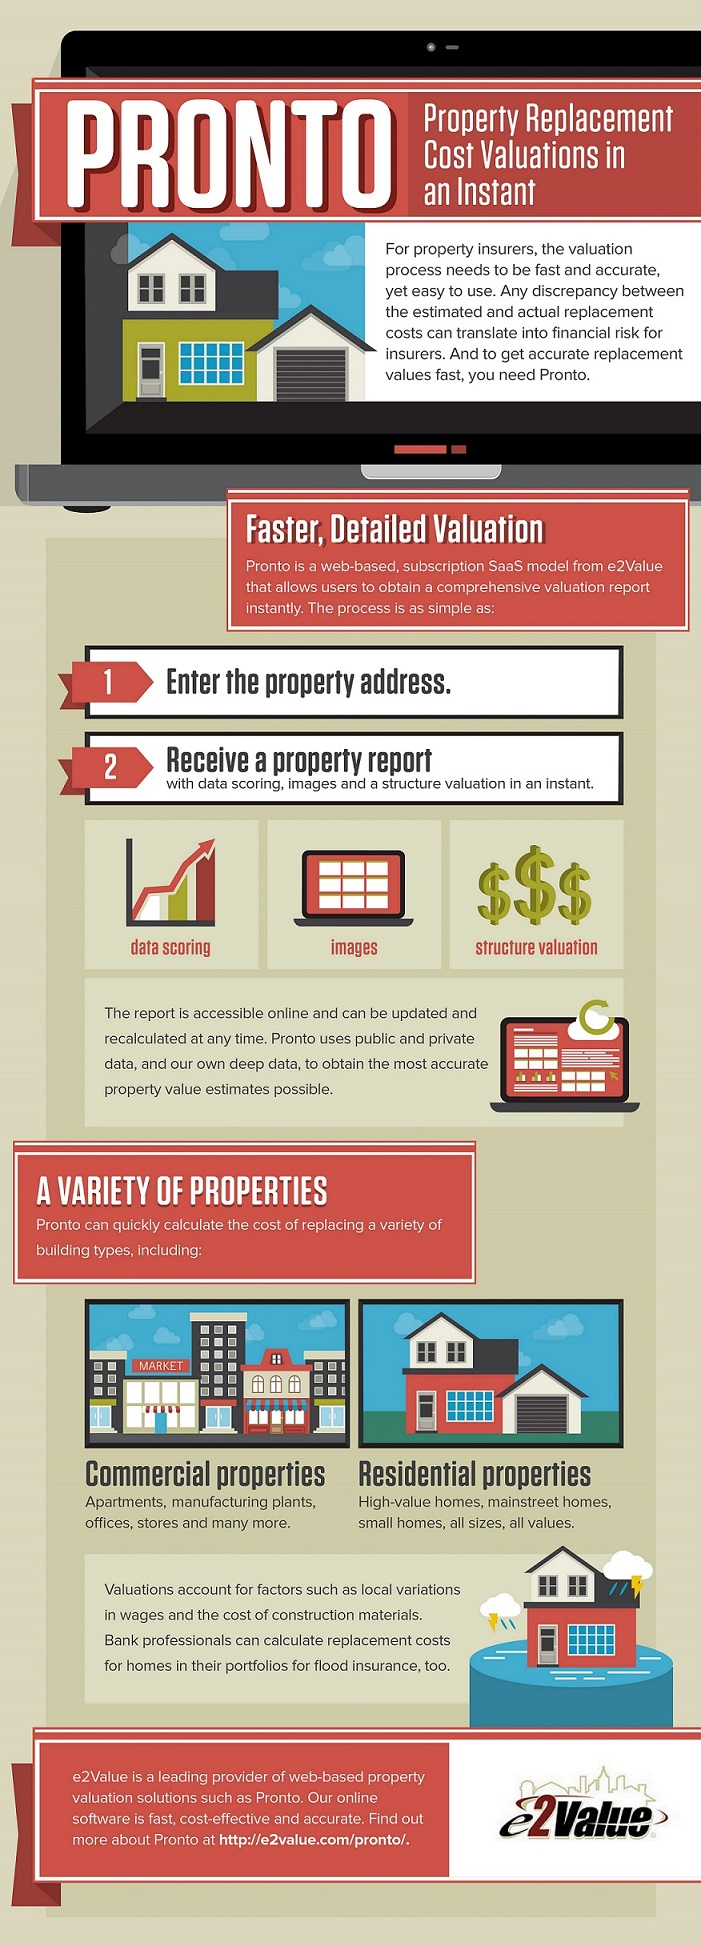 Pronto Property Replacement Cost Valuations